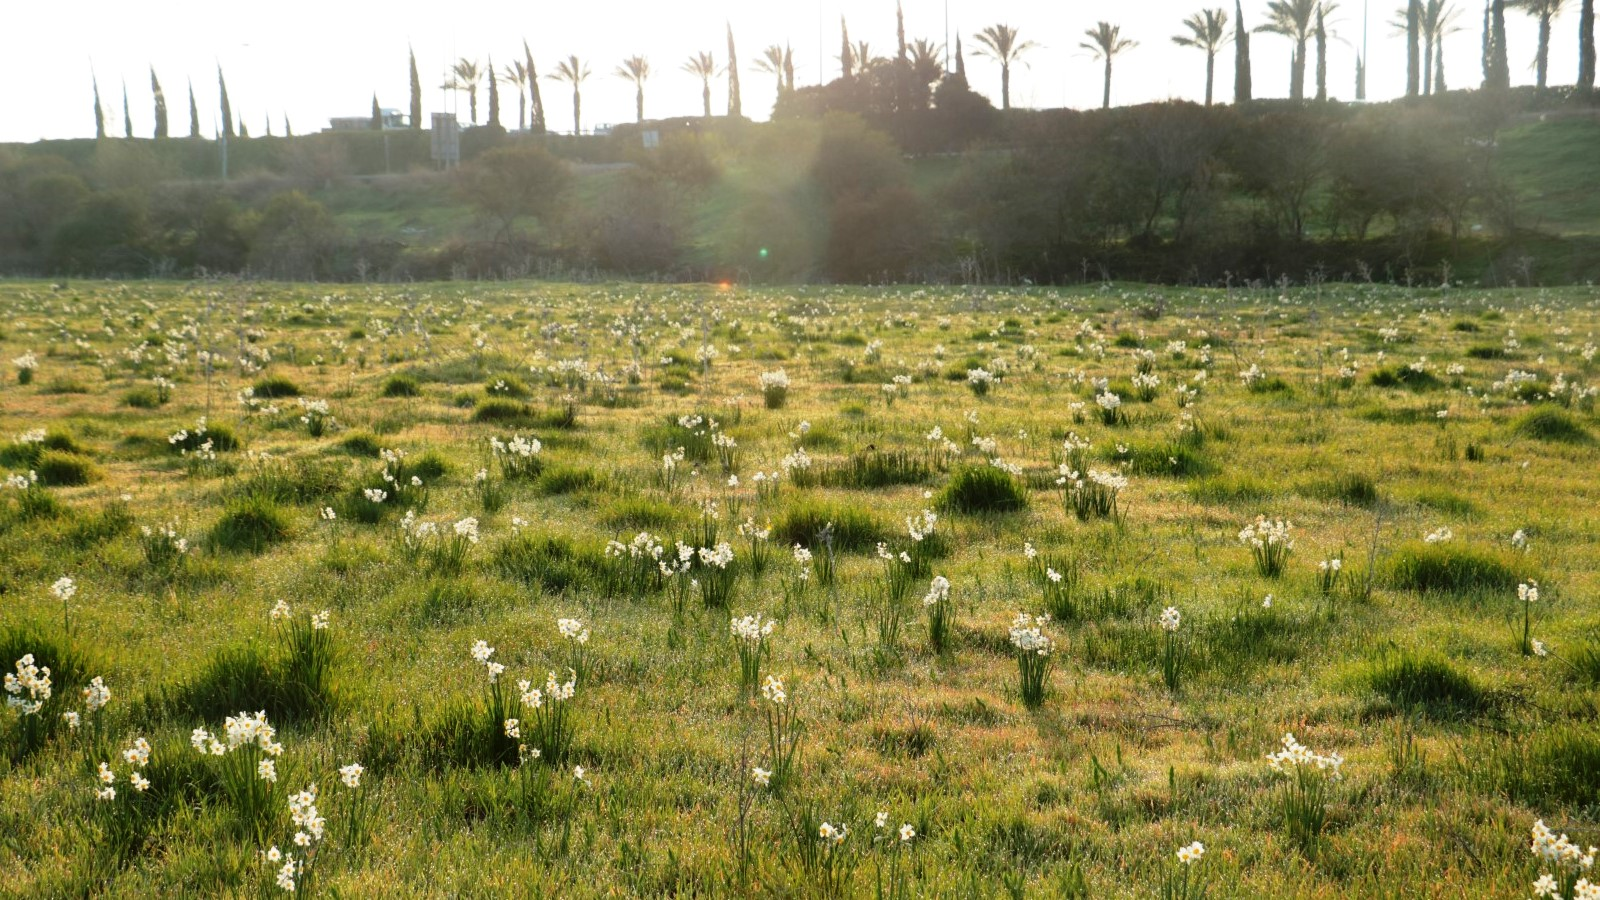 Narcissus flowers carpeting the Kishon River banks. Photo by Olga Vdov/Kishon River Authority